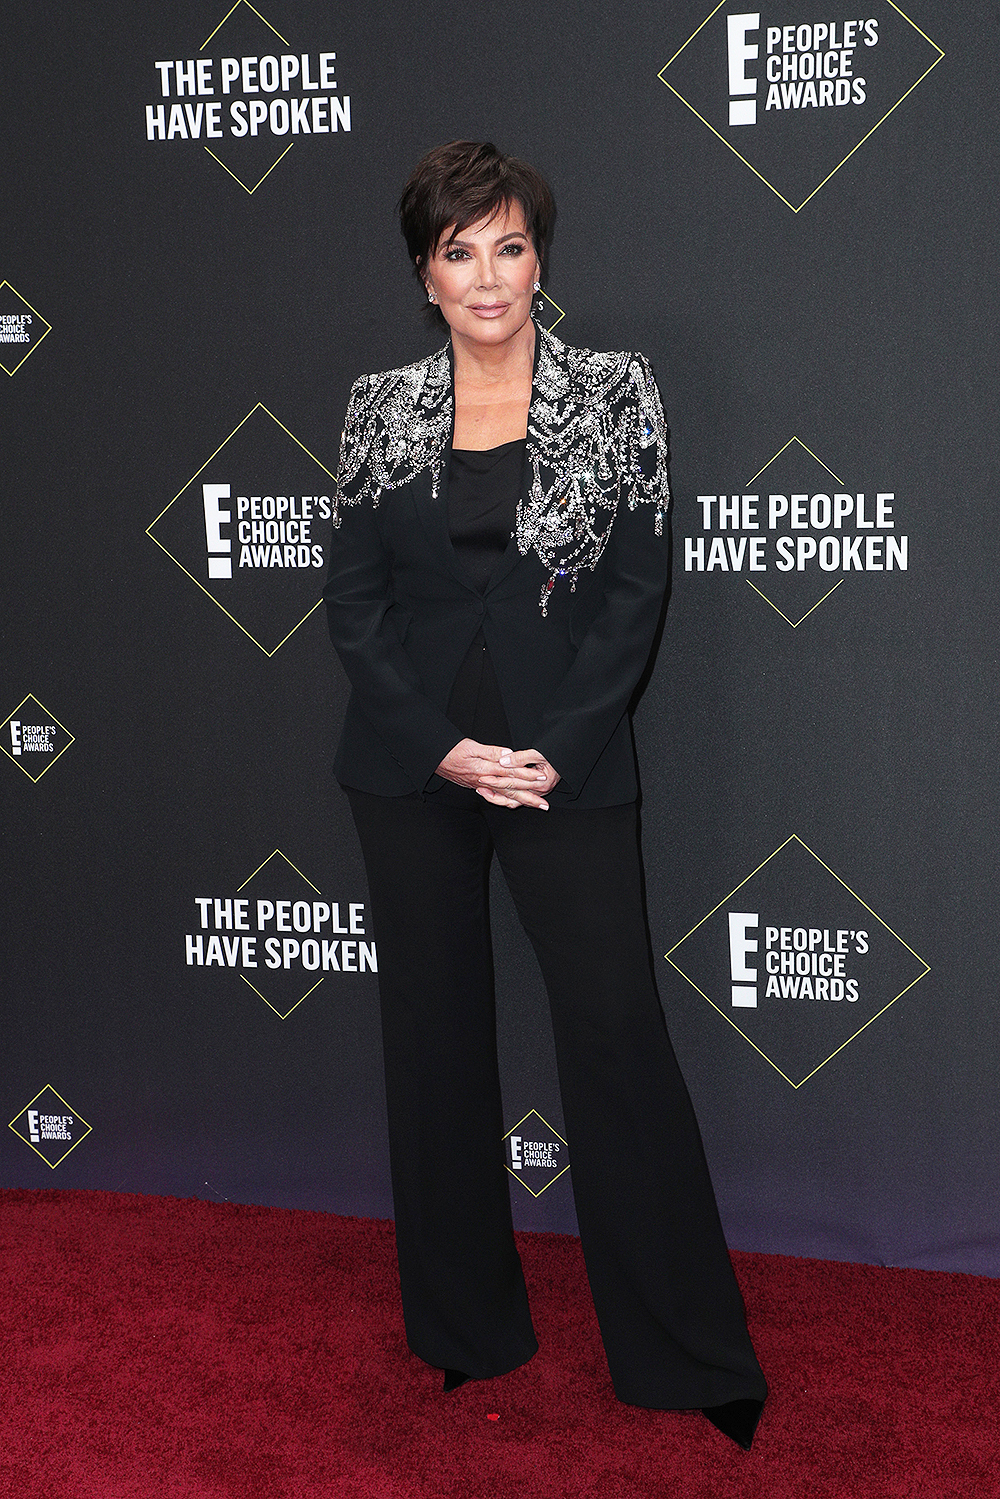 Kris Jenner looked fabulous while walking the red carpet at the People's Choice Awards